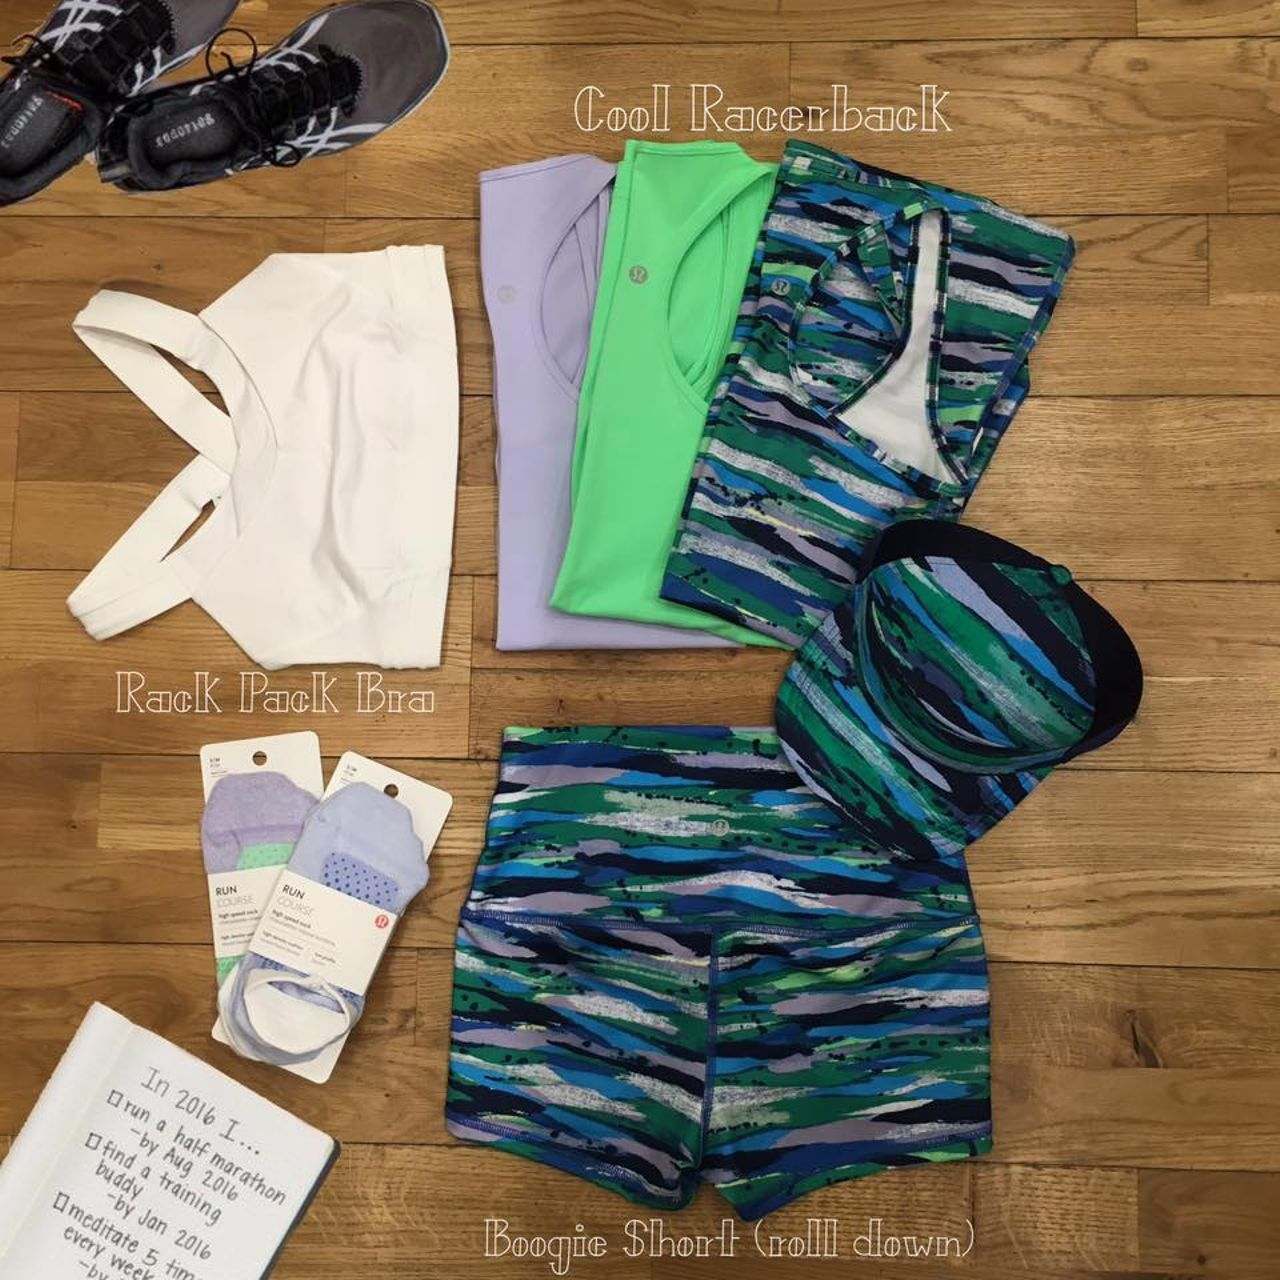 Lululemon Cool Racerback - Seven Wonders Multi